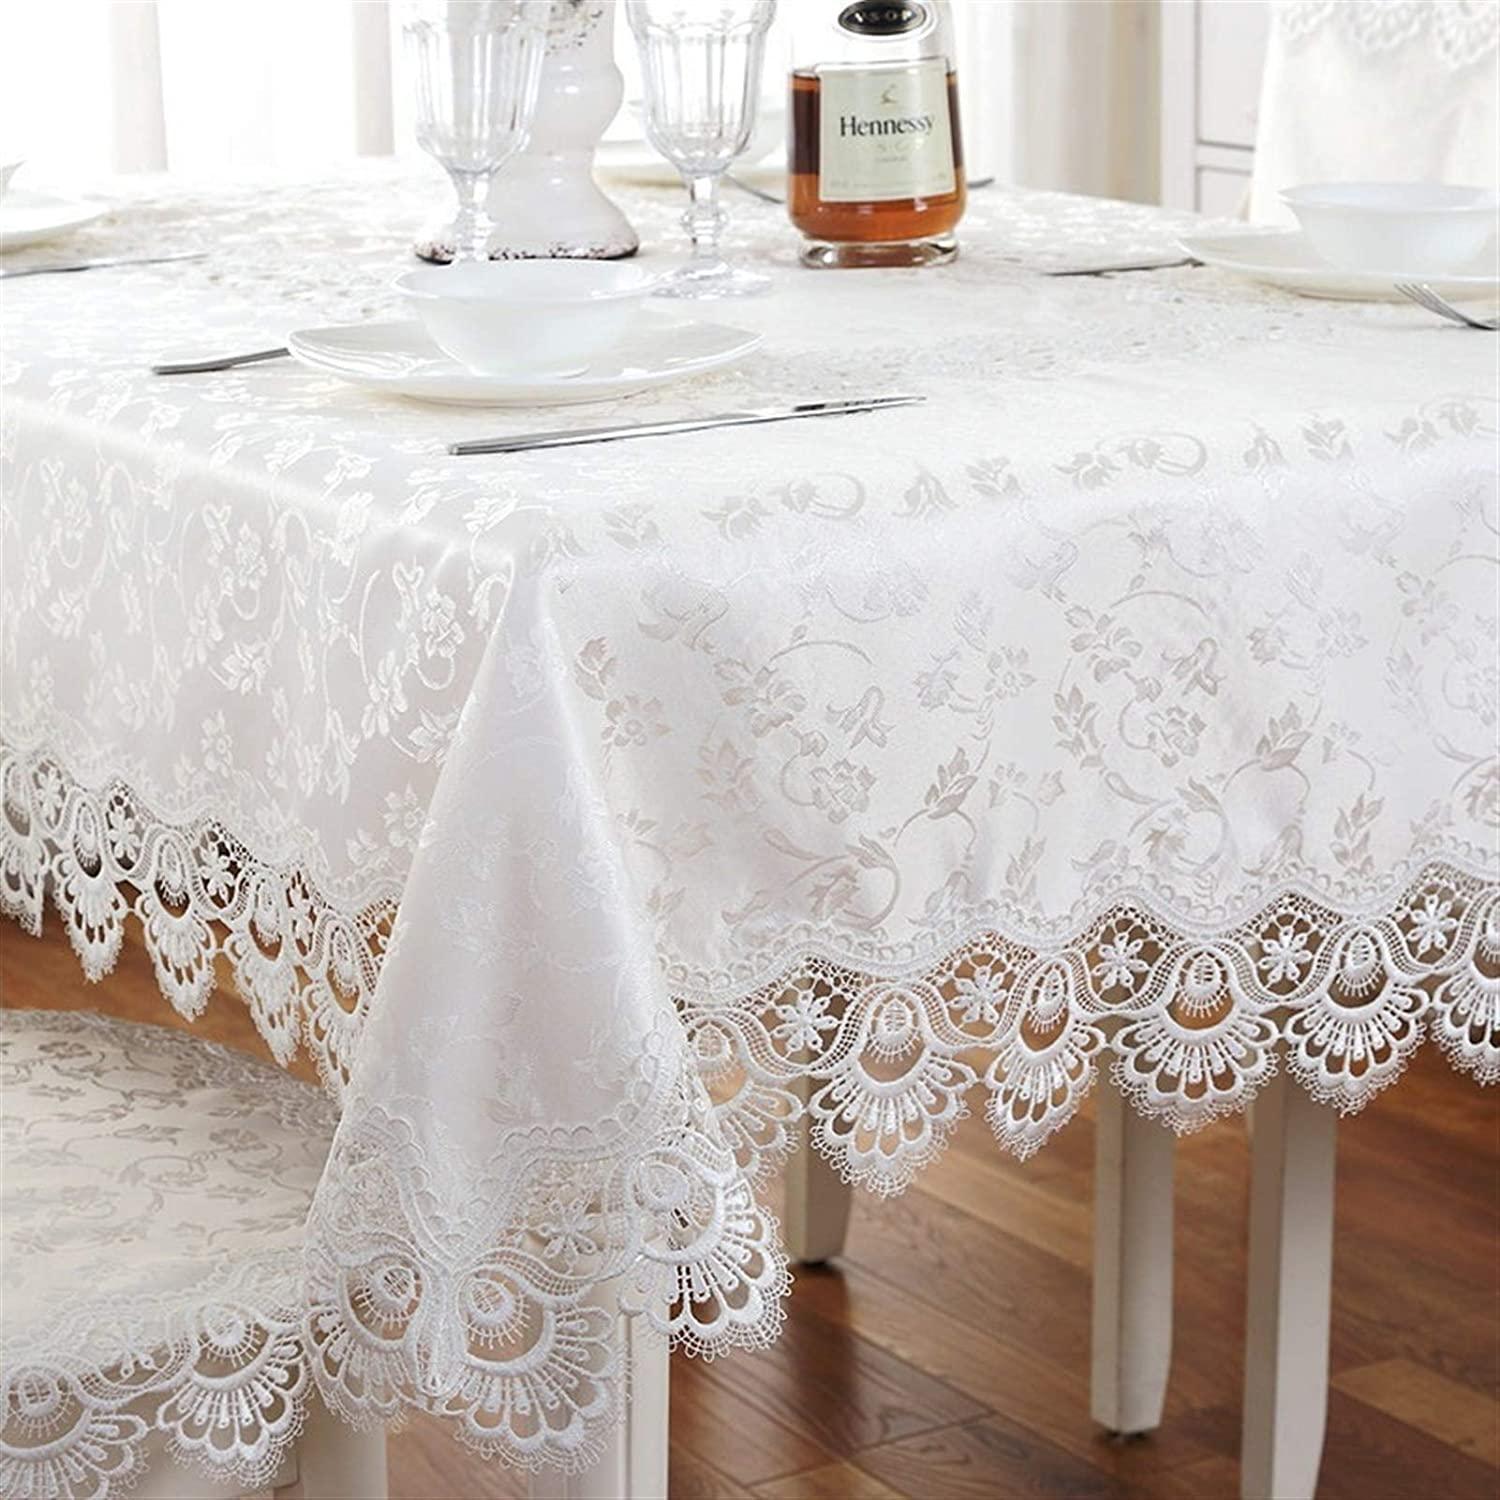 Rectangular Round Lace Tablecloth Free shipping anywhere in the nation excellence Style European Embroidery Craf